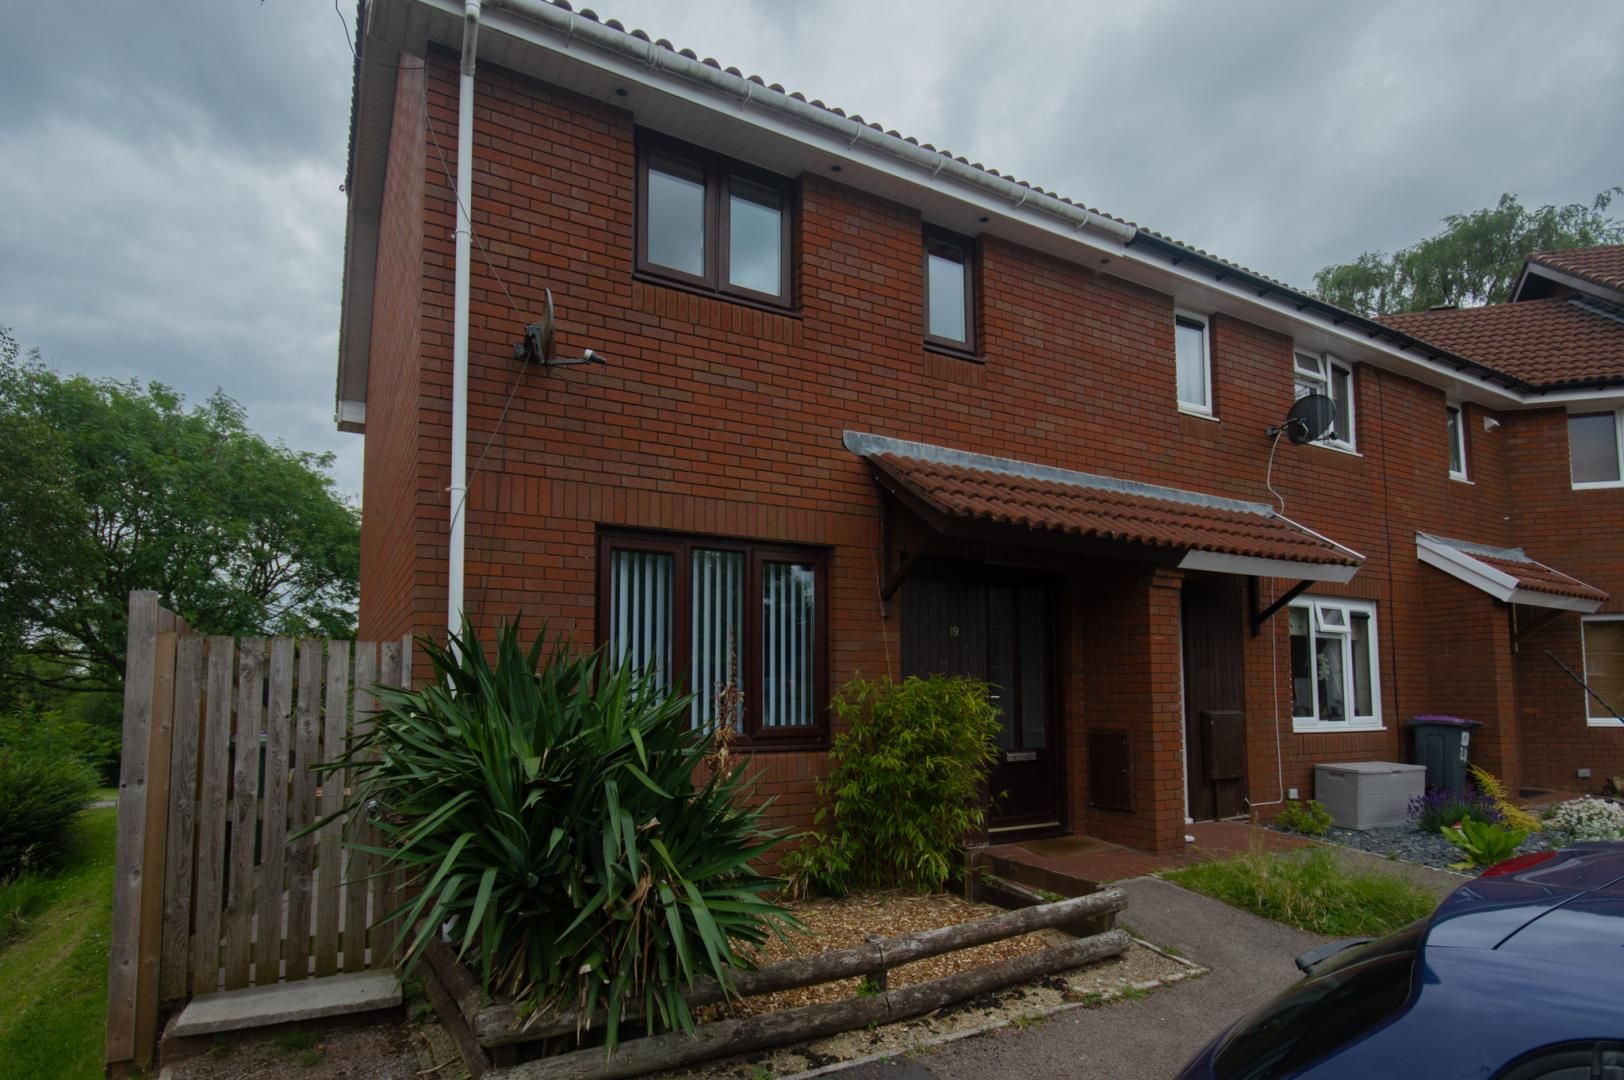 2 bed house to rent in Perthy Close, NP44